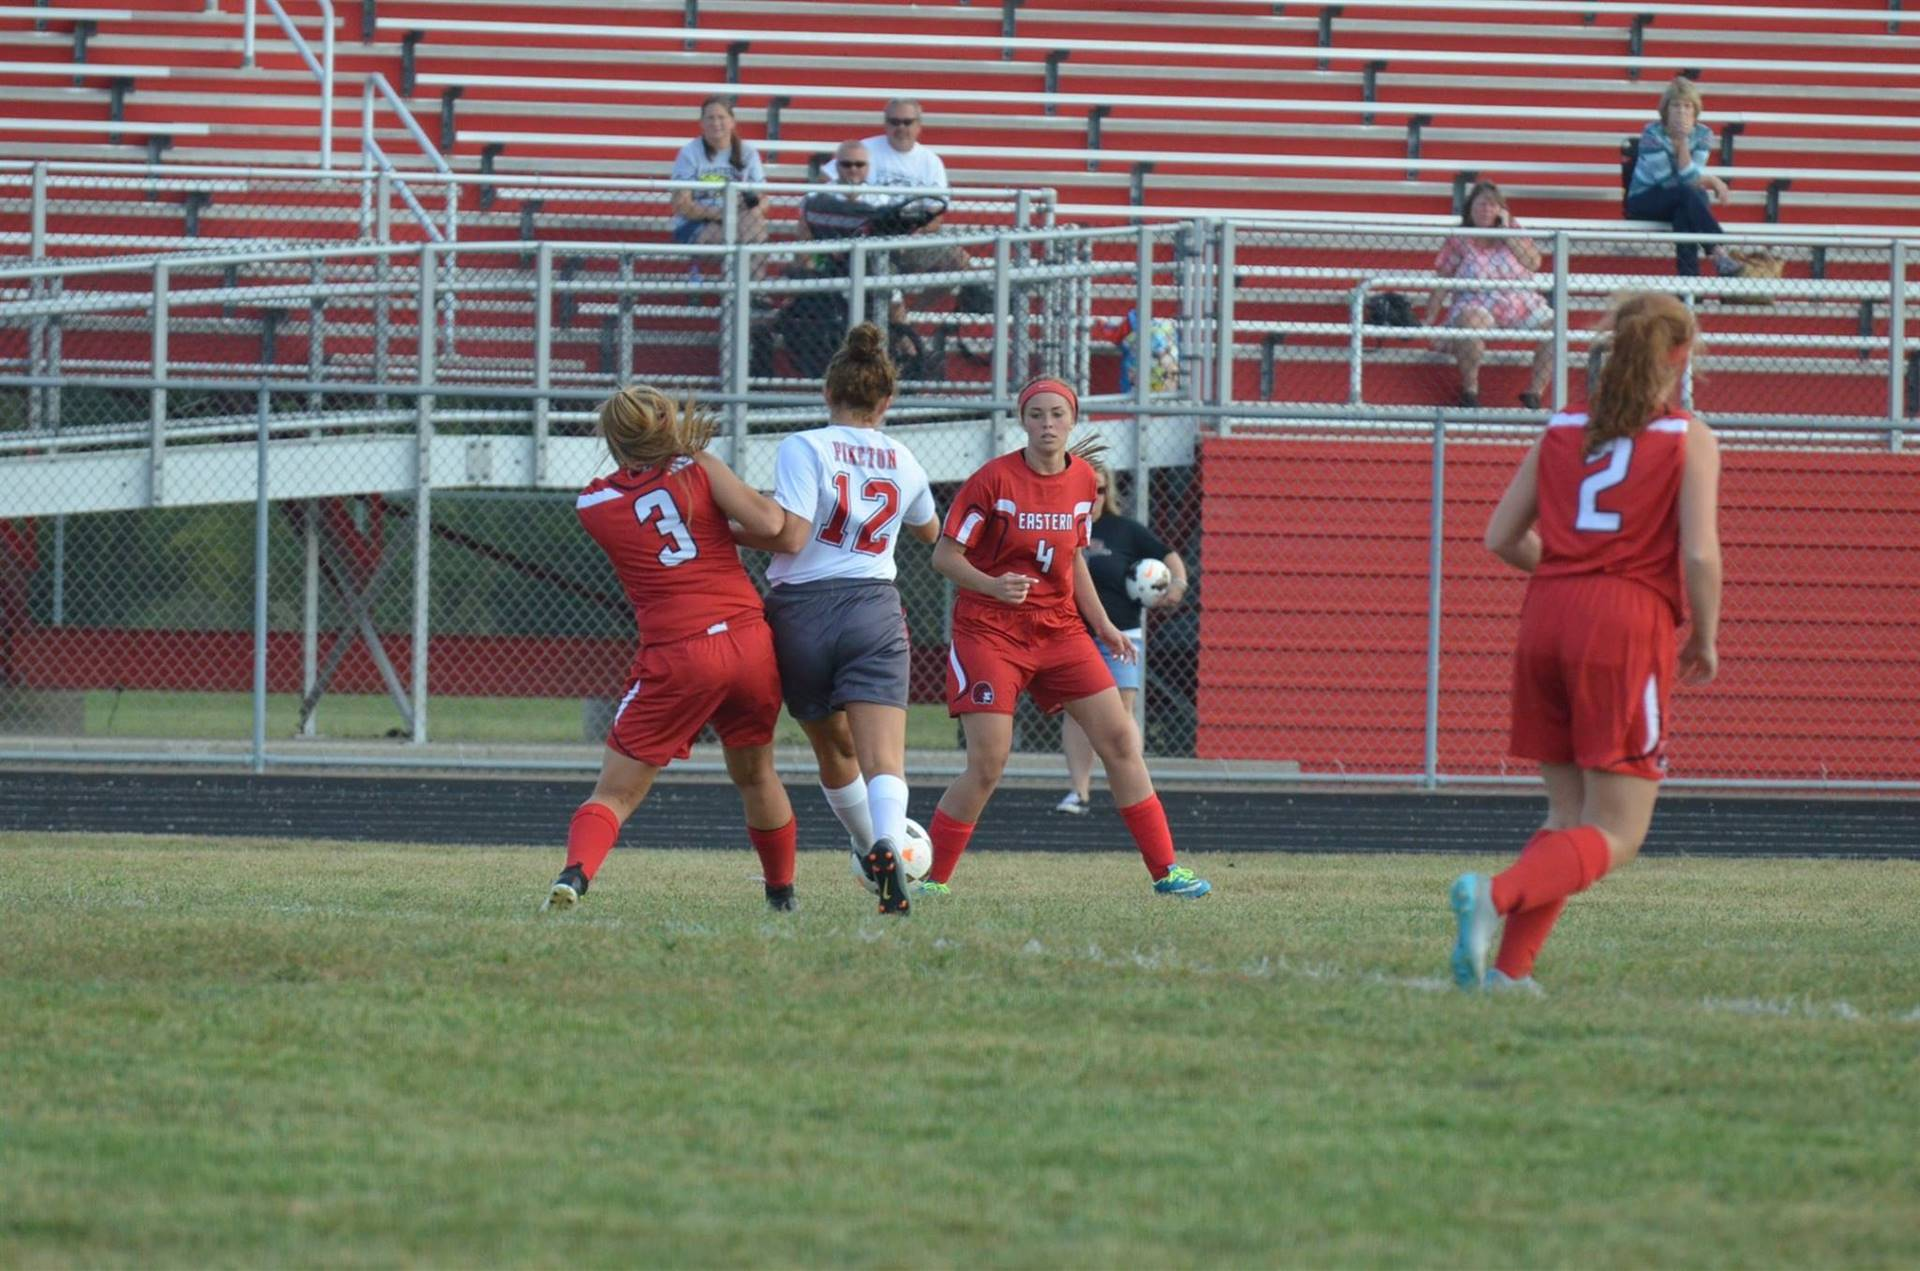 Brianna Odel fighting to win the ball.